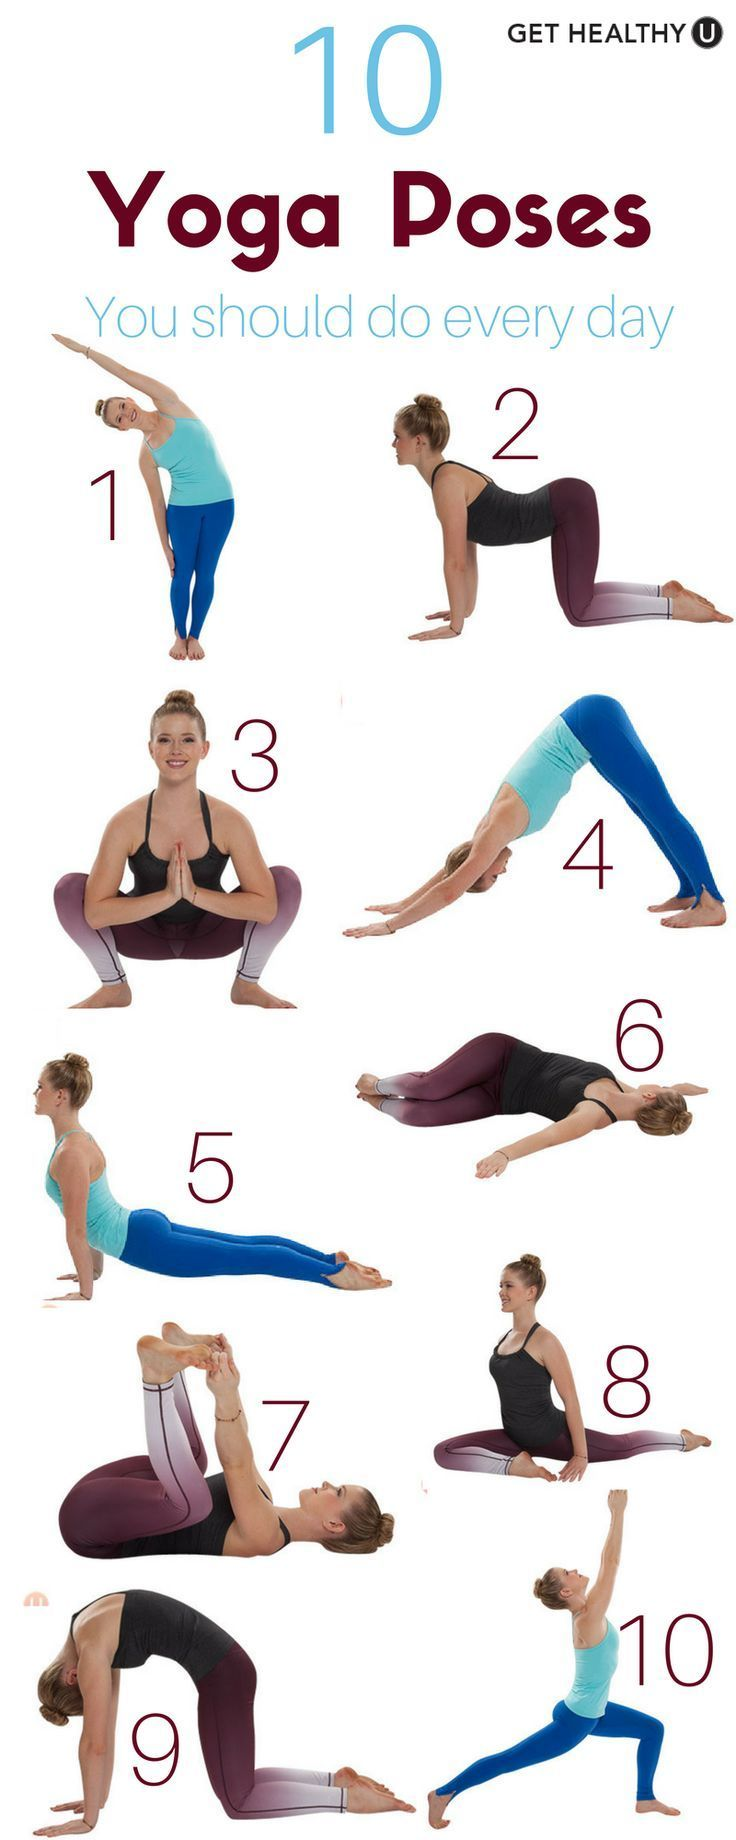 Check out our simple yoga workout! We've given you 10 yoga poses you should do every day. You can do these almost anywhere, at anytime, and you WILL feel amazing!